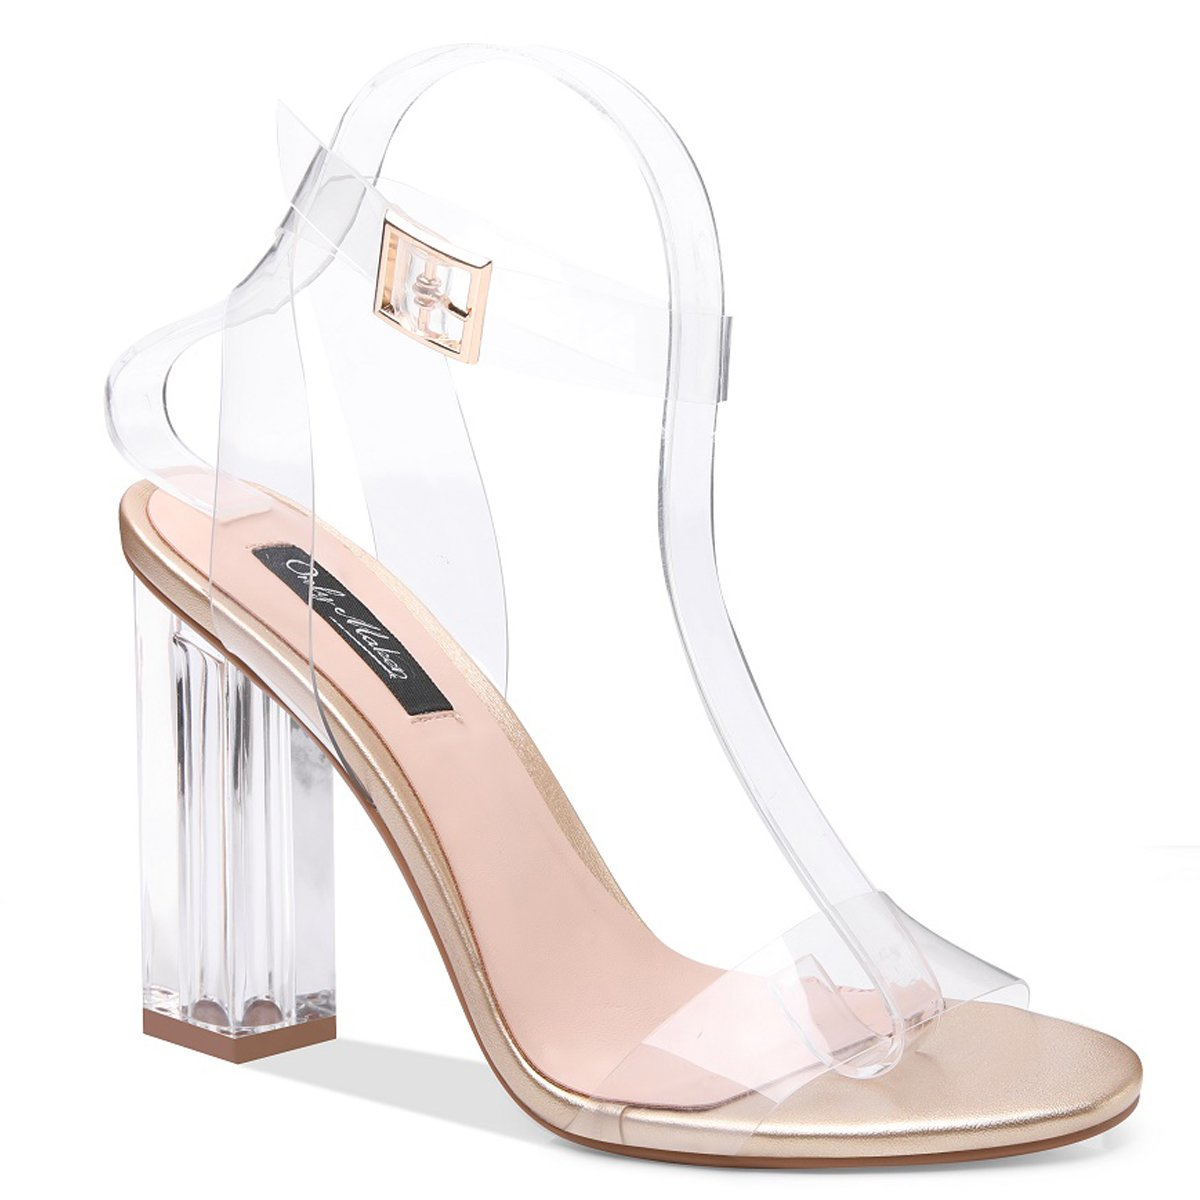 6dd1b4ba666 Onlymaker Women's Lucite Clear Ankle Strap Adjustable Buckle Block Chunky  Perspex High Heel Transparent Dress Sandals